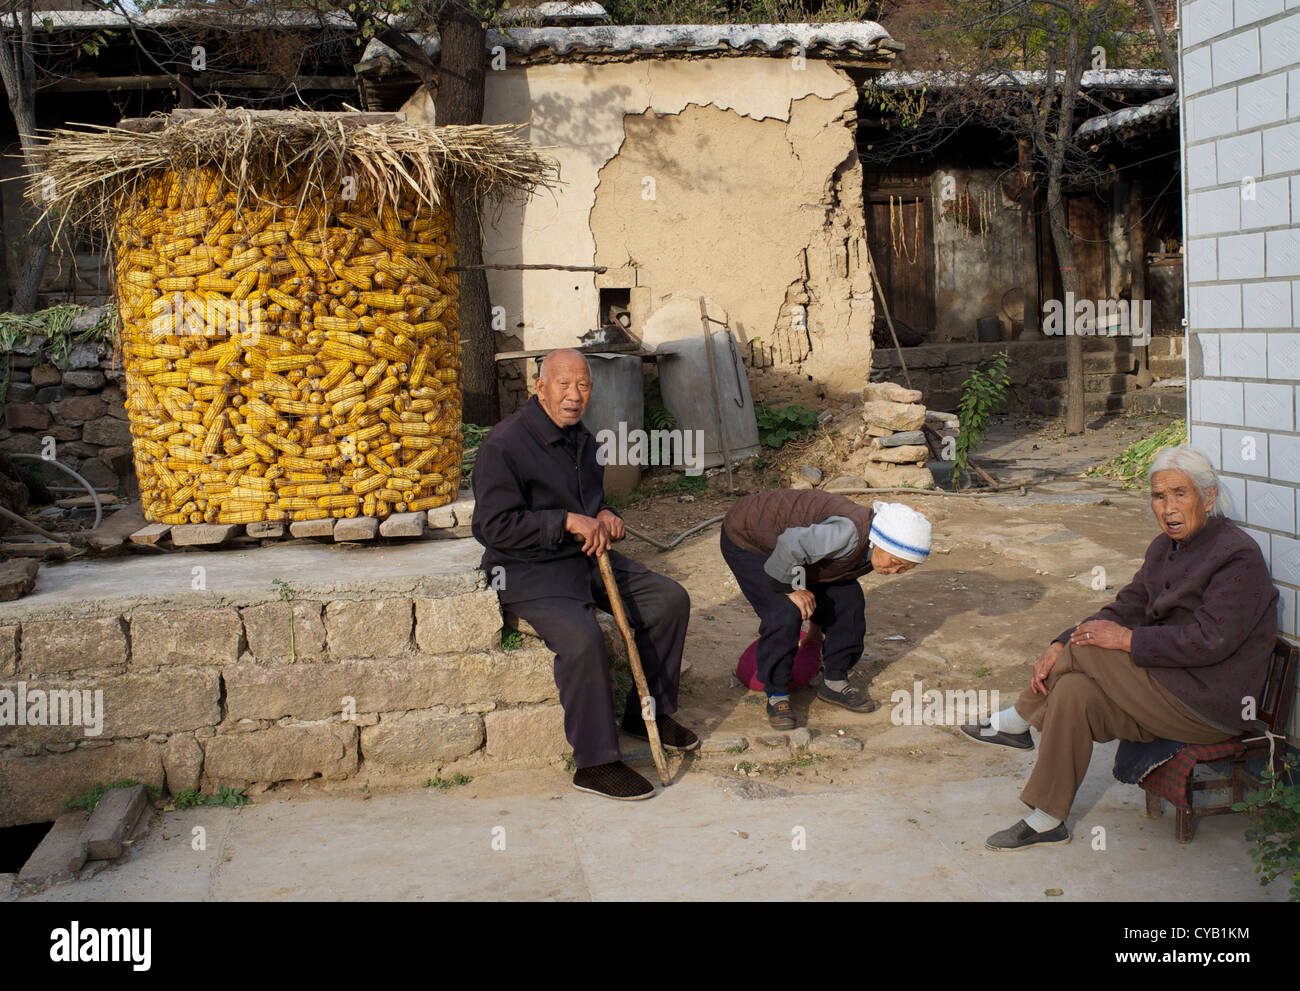 Old people rest in Laofen village, Pingshan - an officially named Poverty County, Hebei, China. 23-Oct-2012 - Stock Image